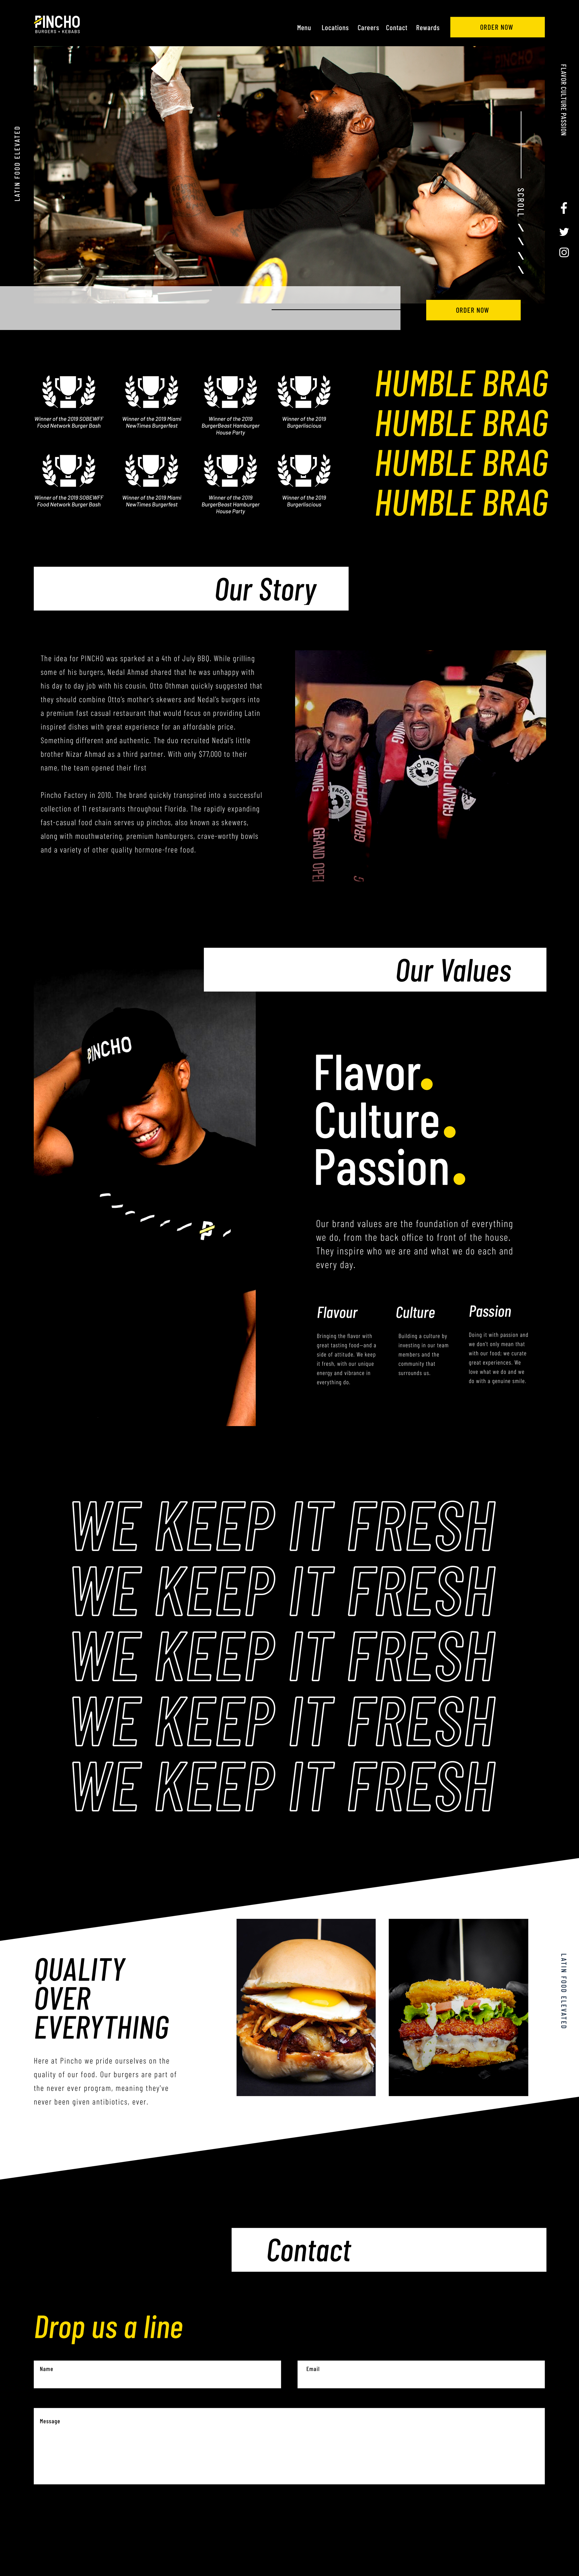 Homepage comp for PINCO.